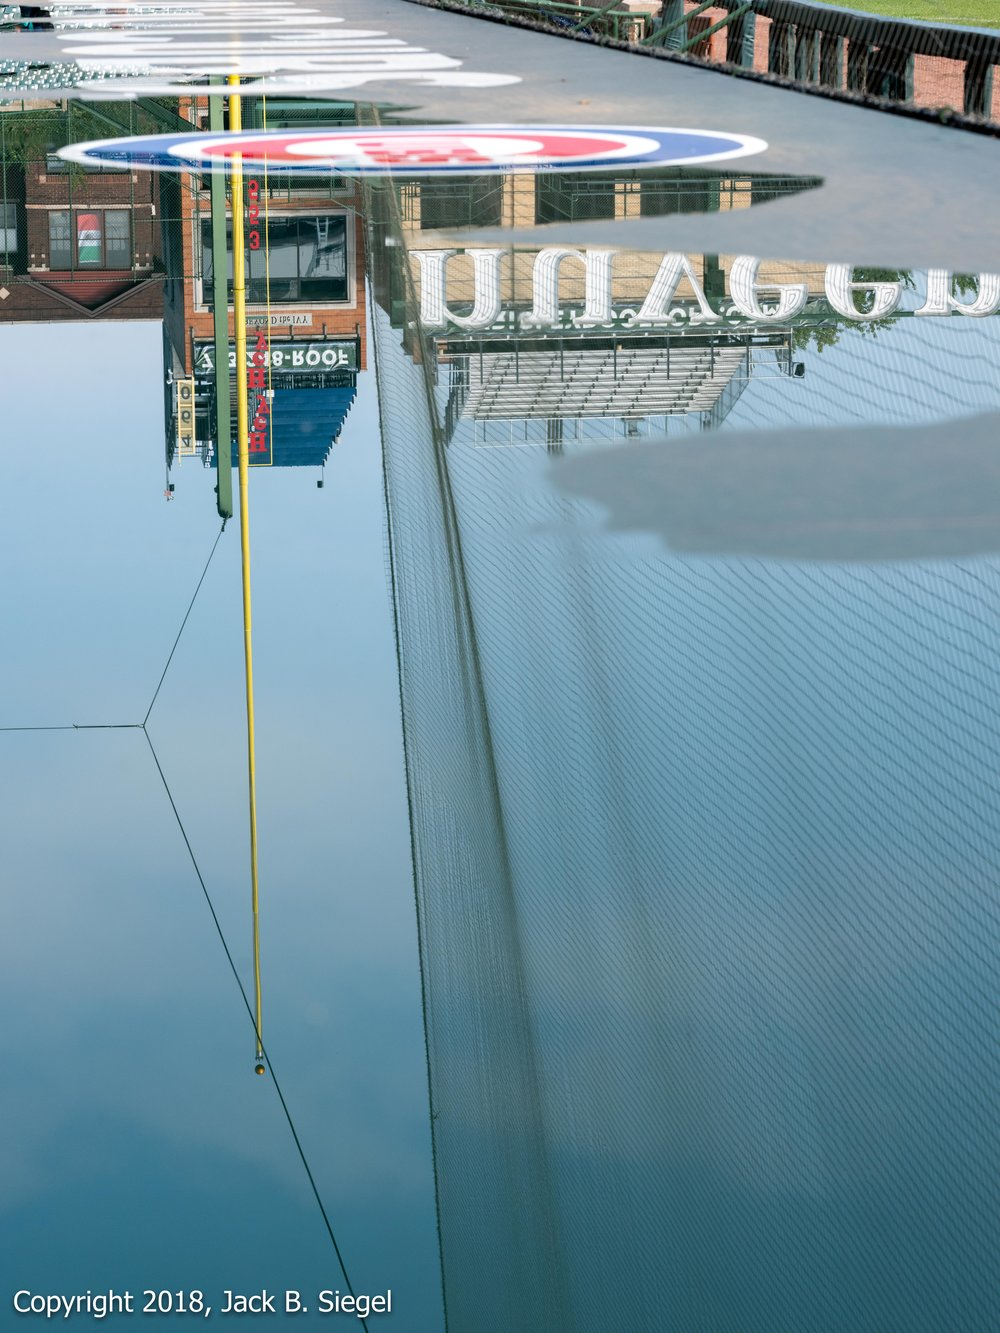 _DSF8662_Copyright 2018 jpeg_Reflected on the Roof of the Cubs Dugout.jpg